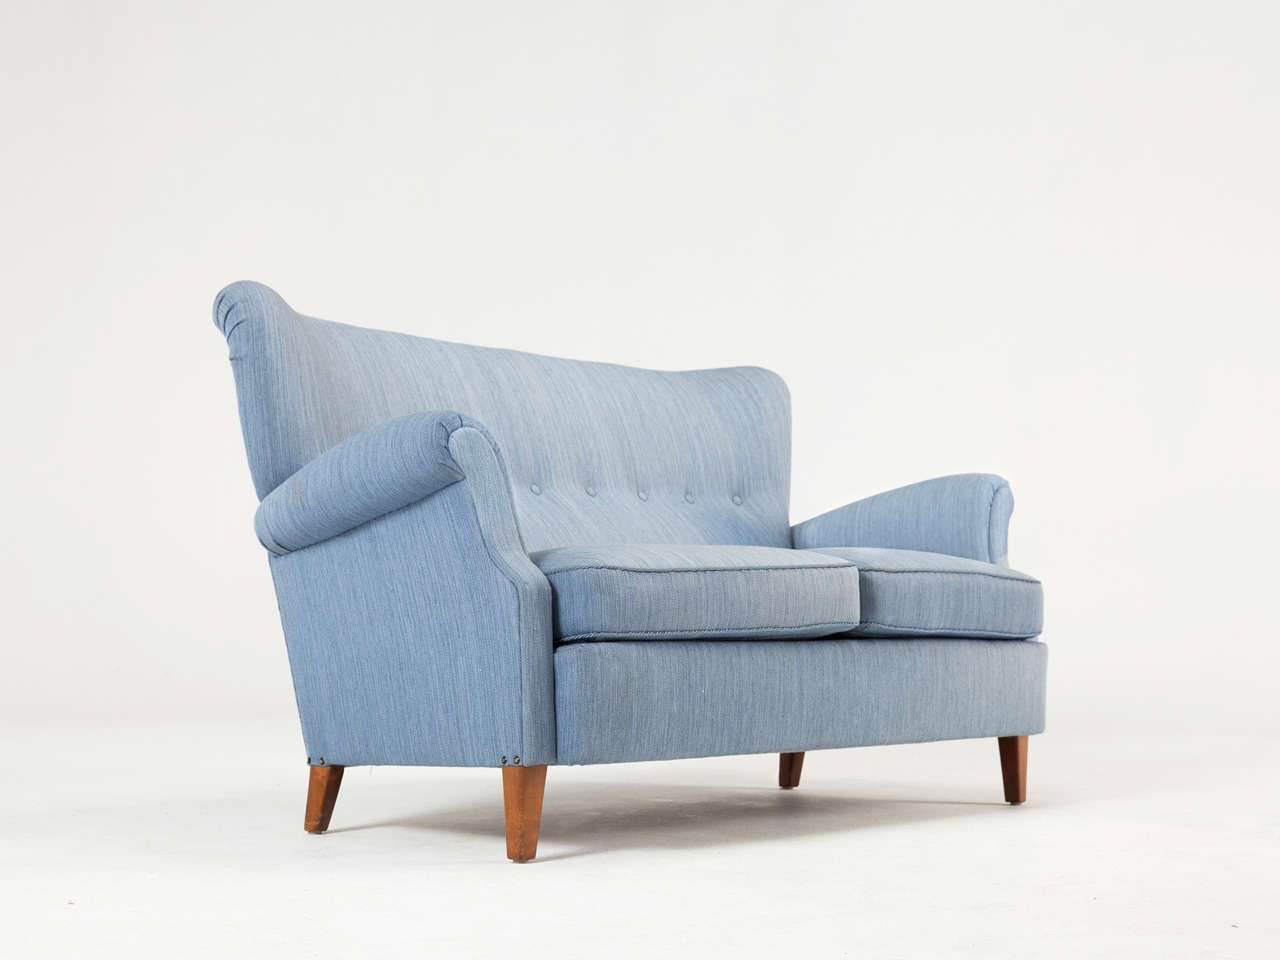 Scandinavian two-seater sofa upholstered in original blue wool fabric.  Designed in the style of Carl Malmsten.  The back has deep-stitched buttons and the seat consists of two loose cushions. The armrests are elegantly shaped. The legs are made